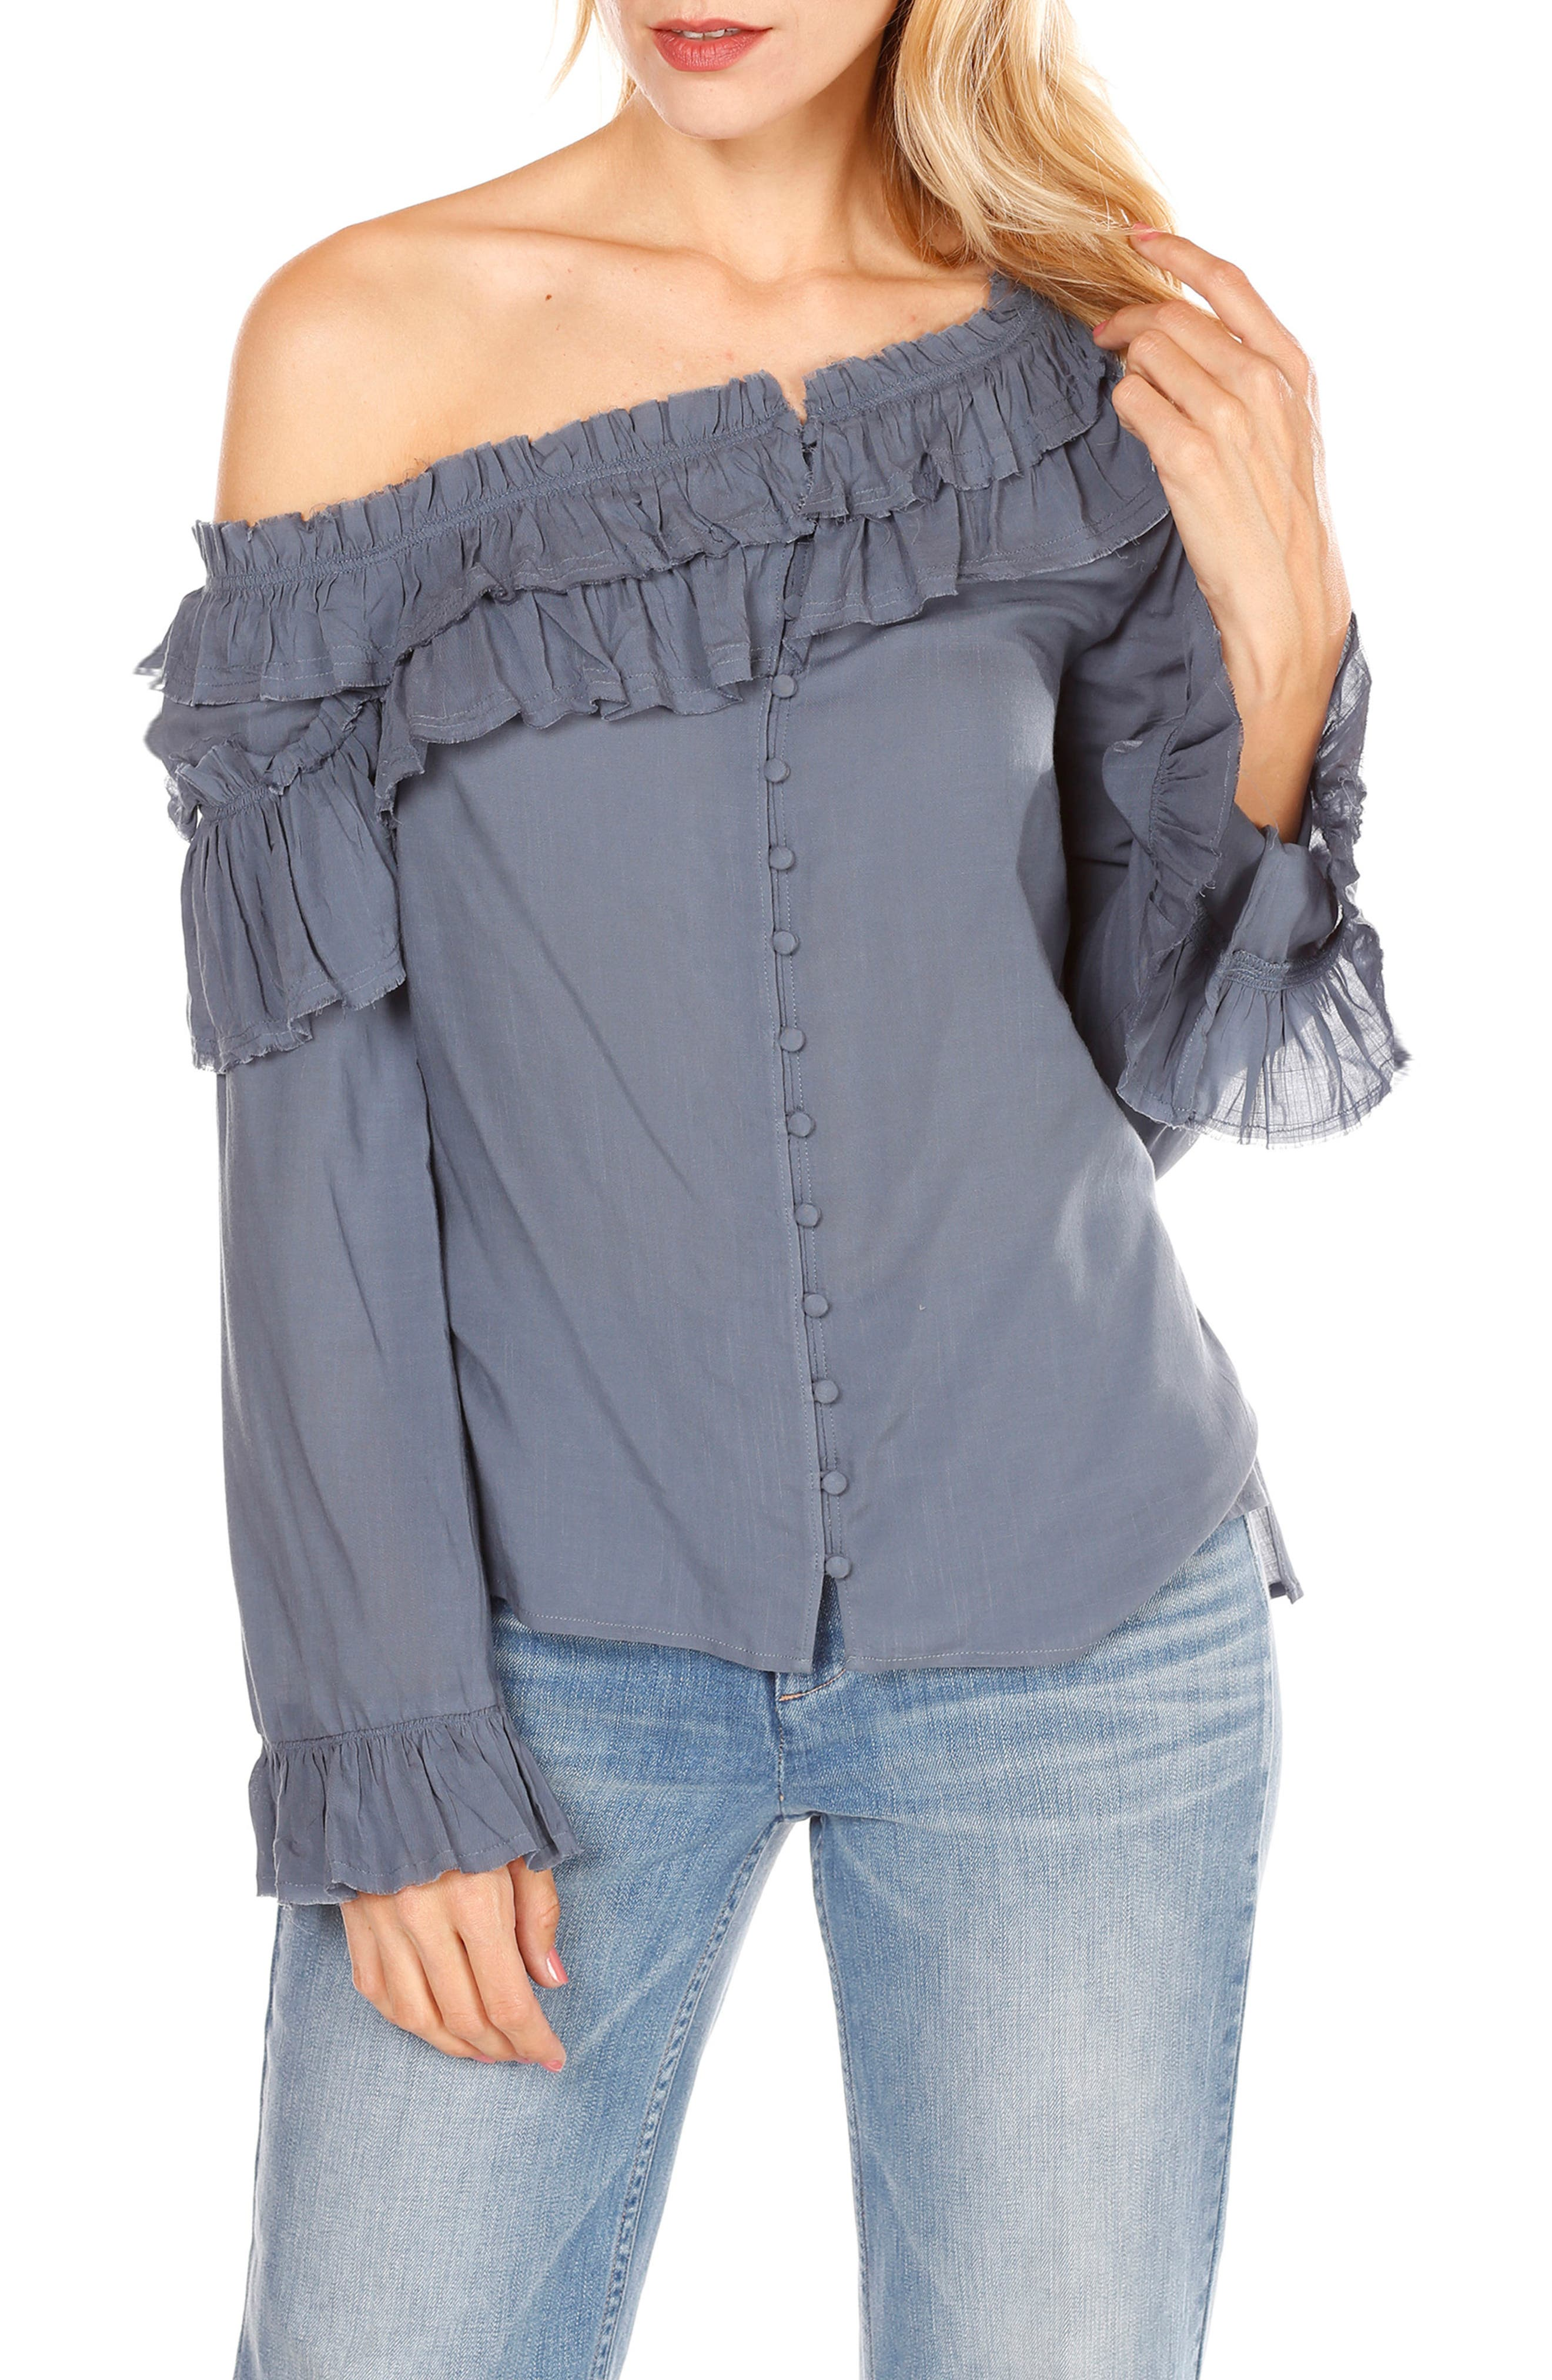 Augustina One-Shoulder Top,                         Main,                         color, China Blue